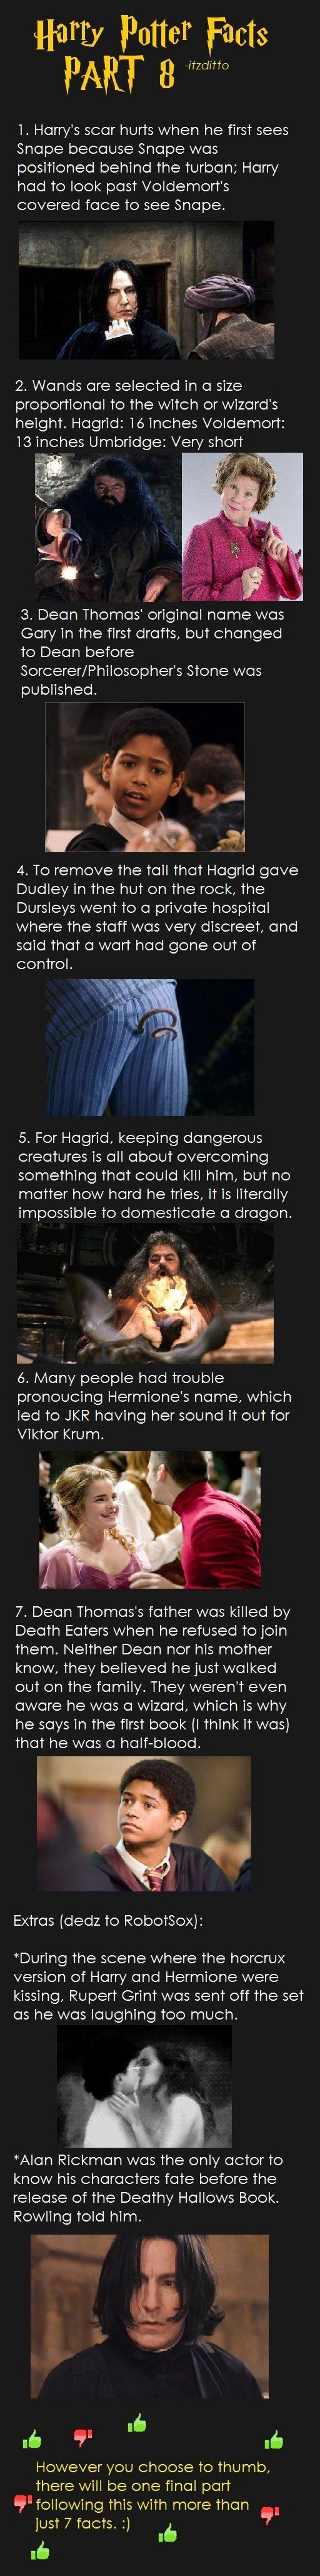 HP Facts Part 8